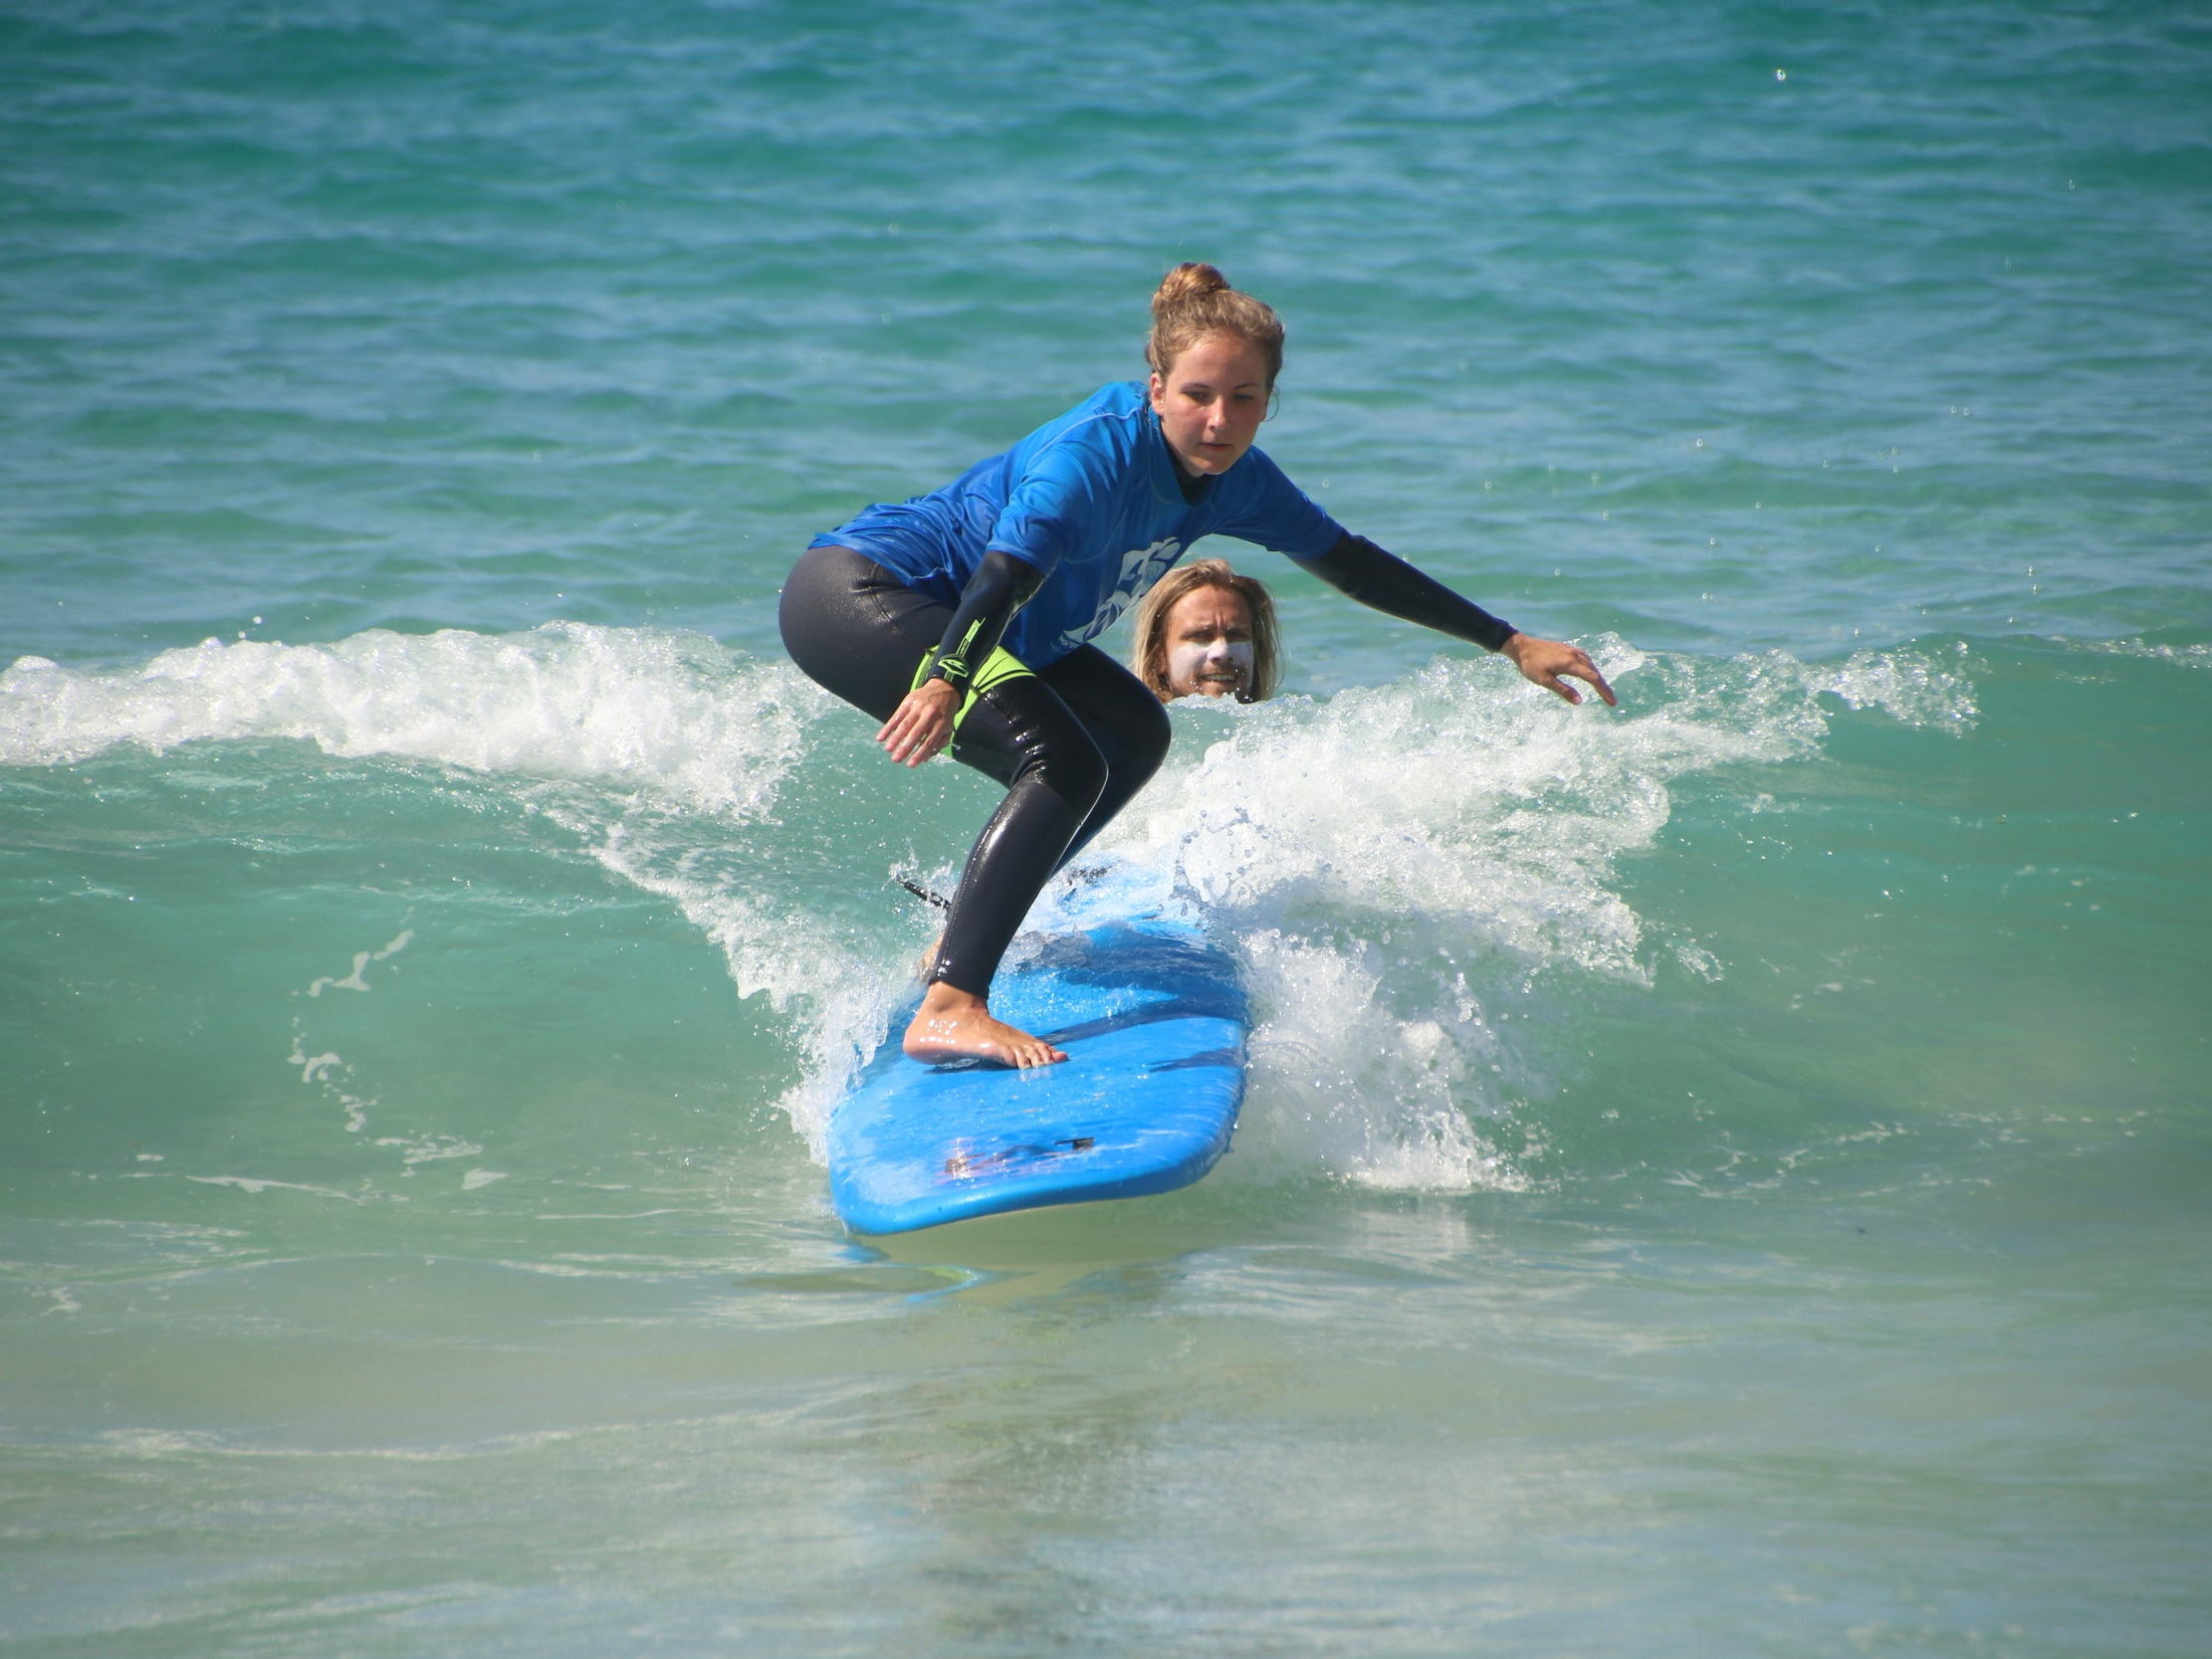 Surf Courses for Beginners and Intemediate -